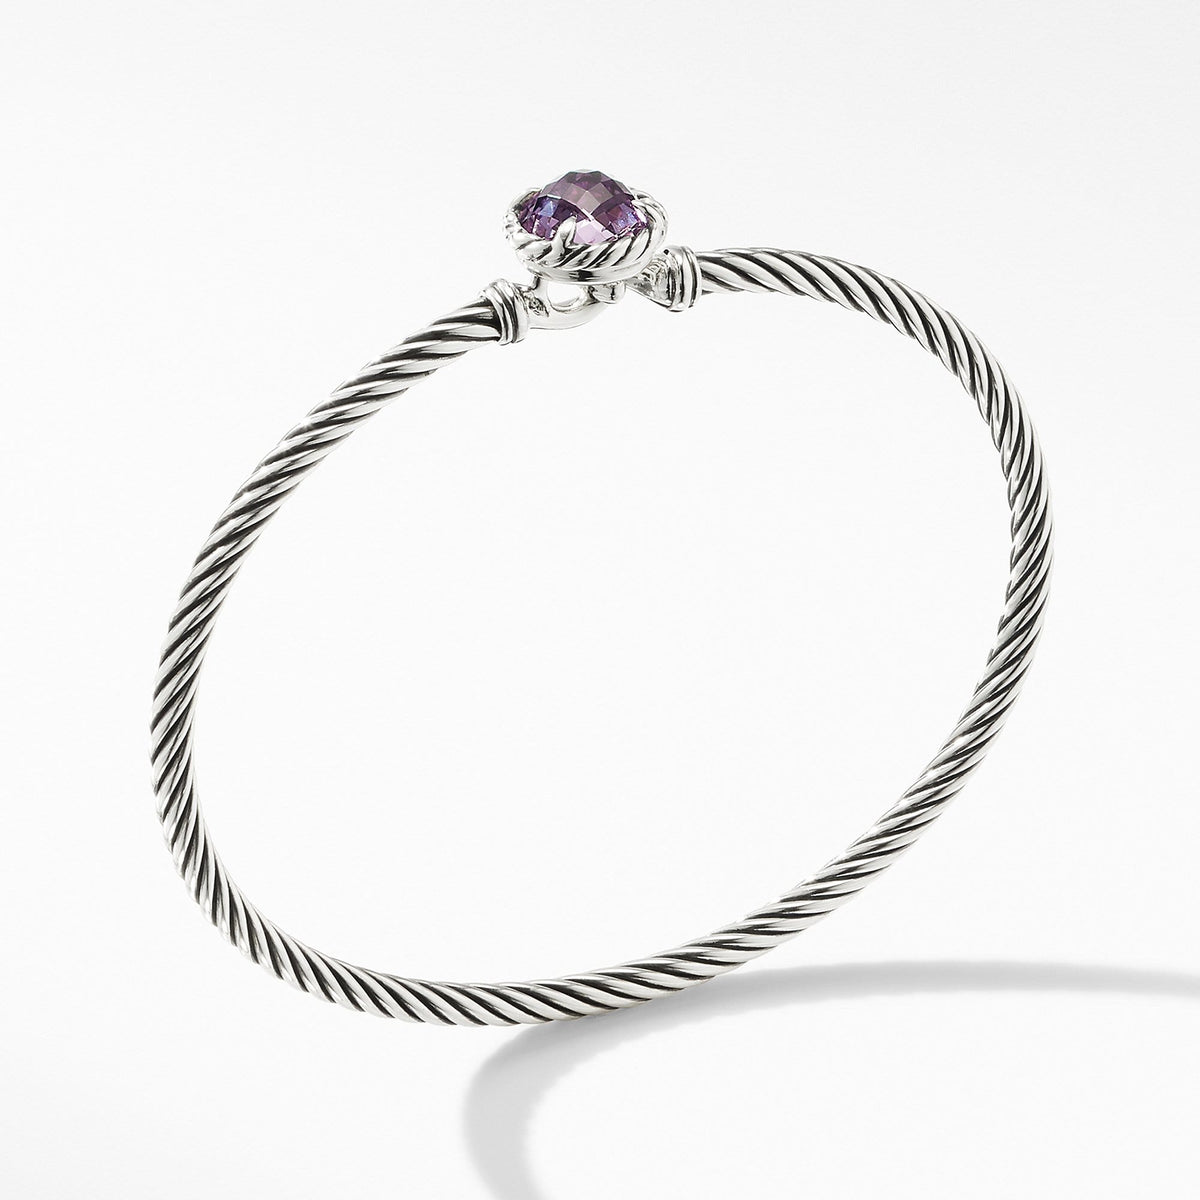 Chatelaine Bracelet with Amethyst